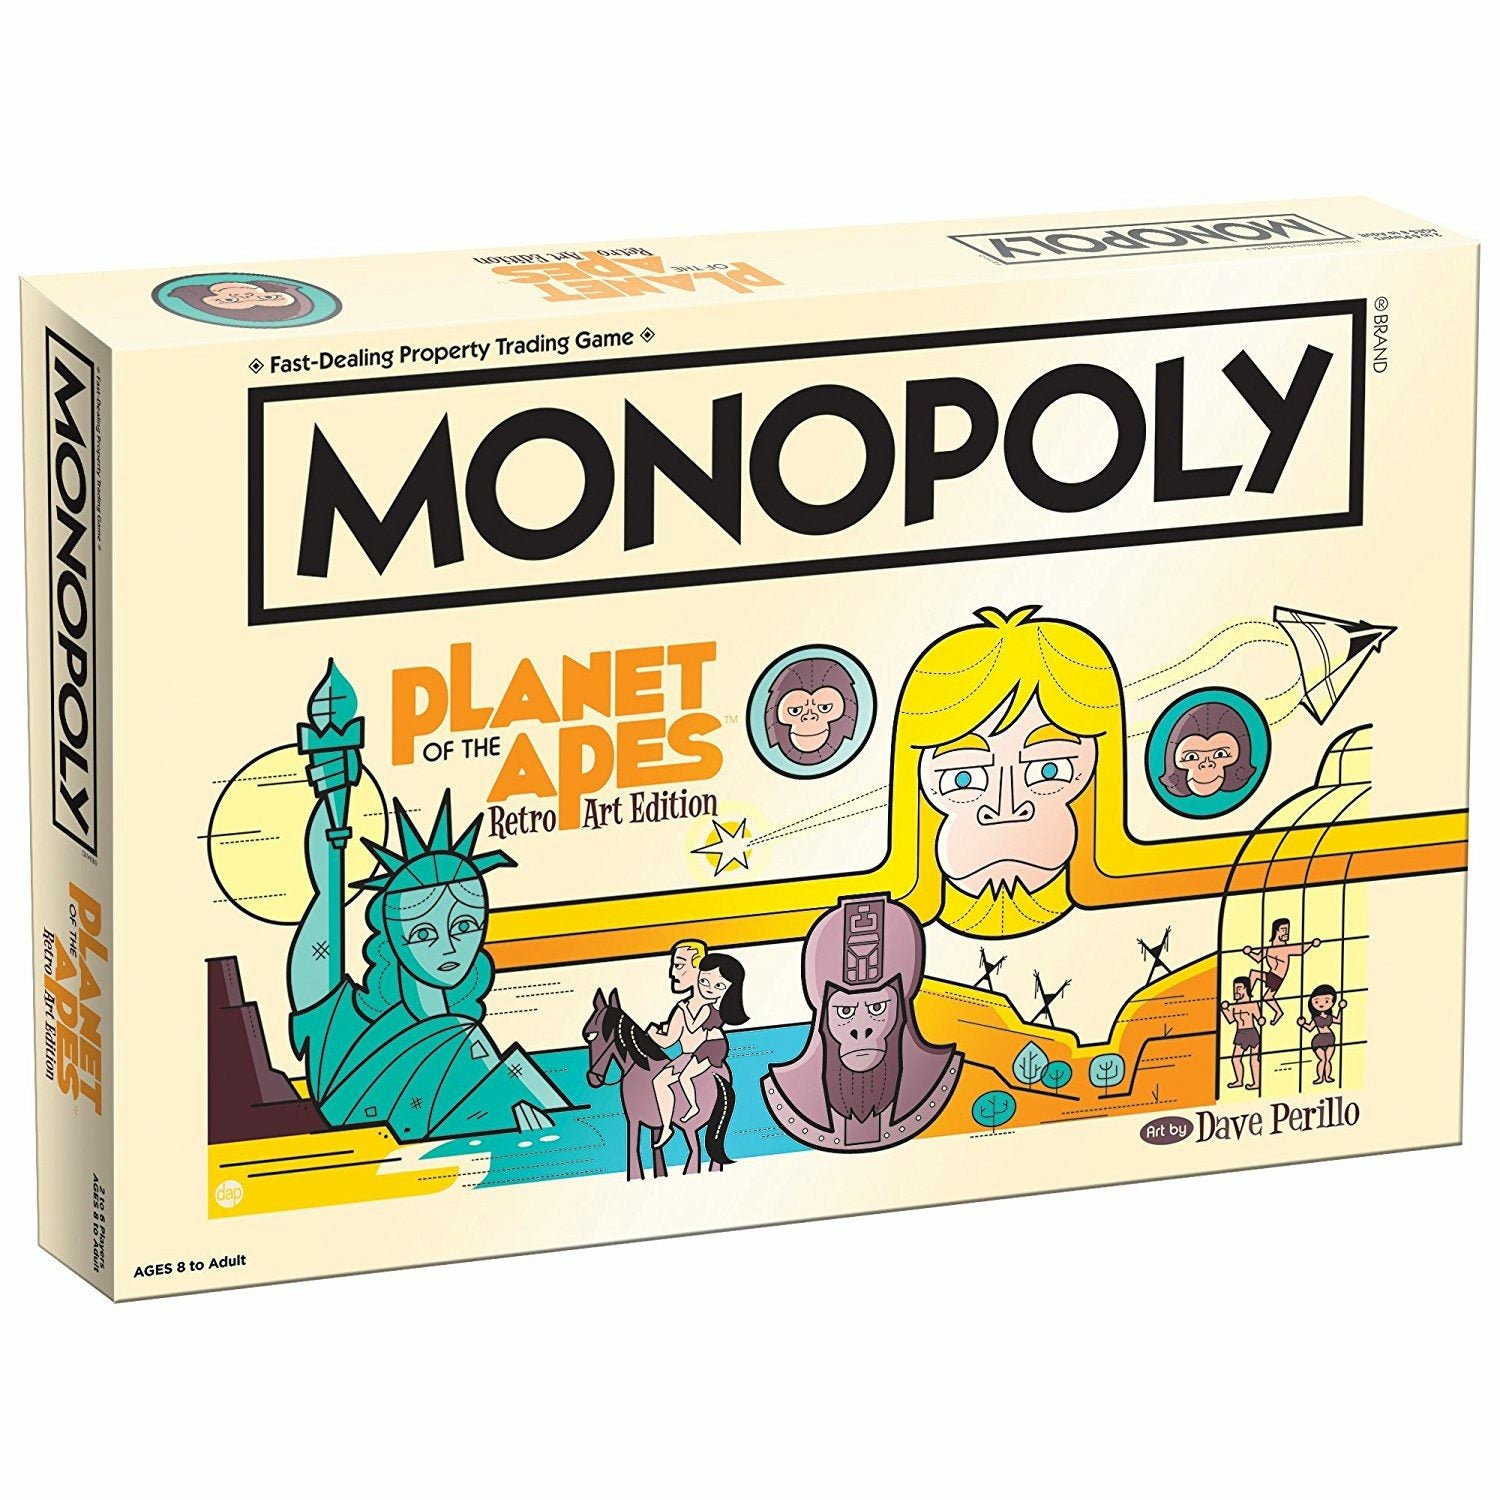 Planet of the Apes Retro Edition Monopoly Board Game